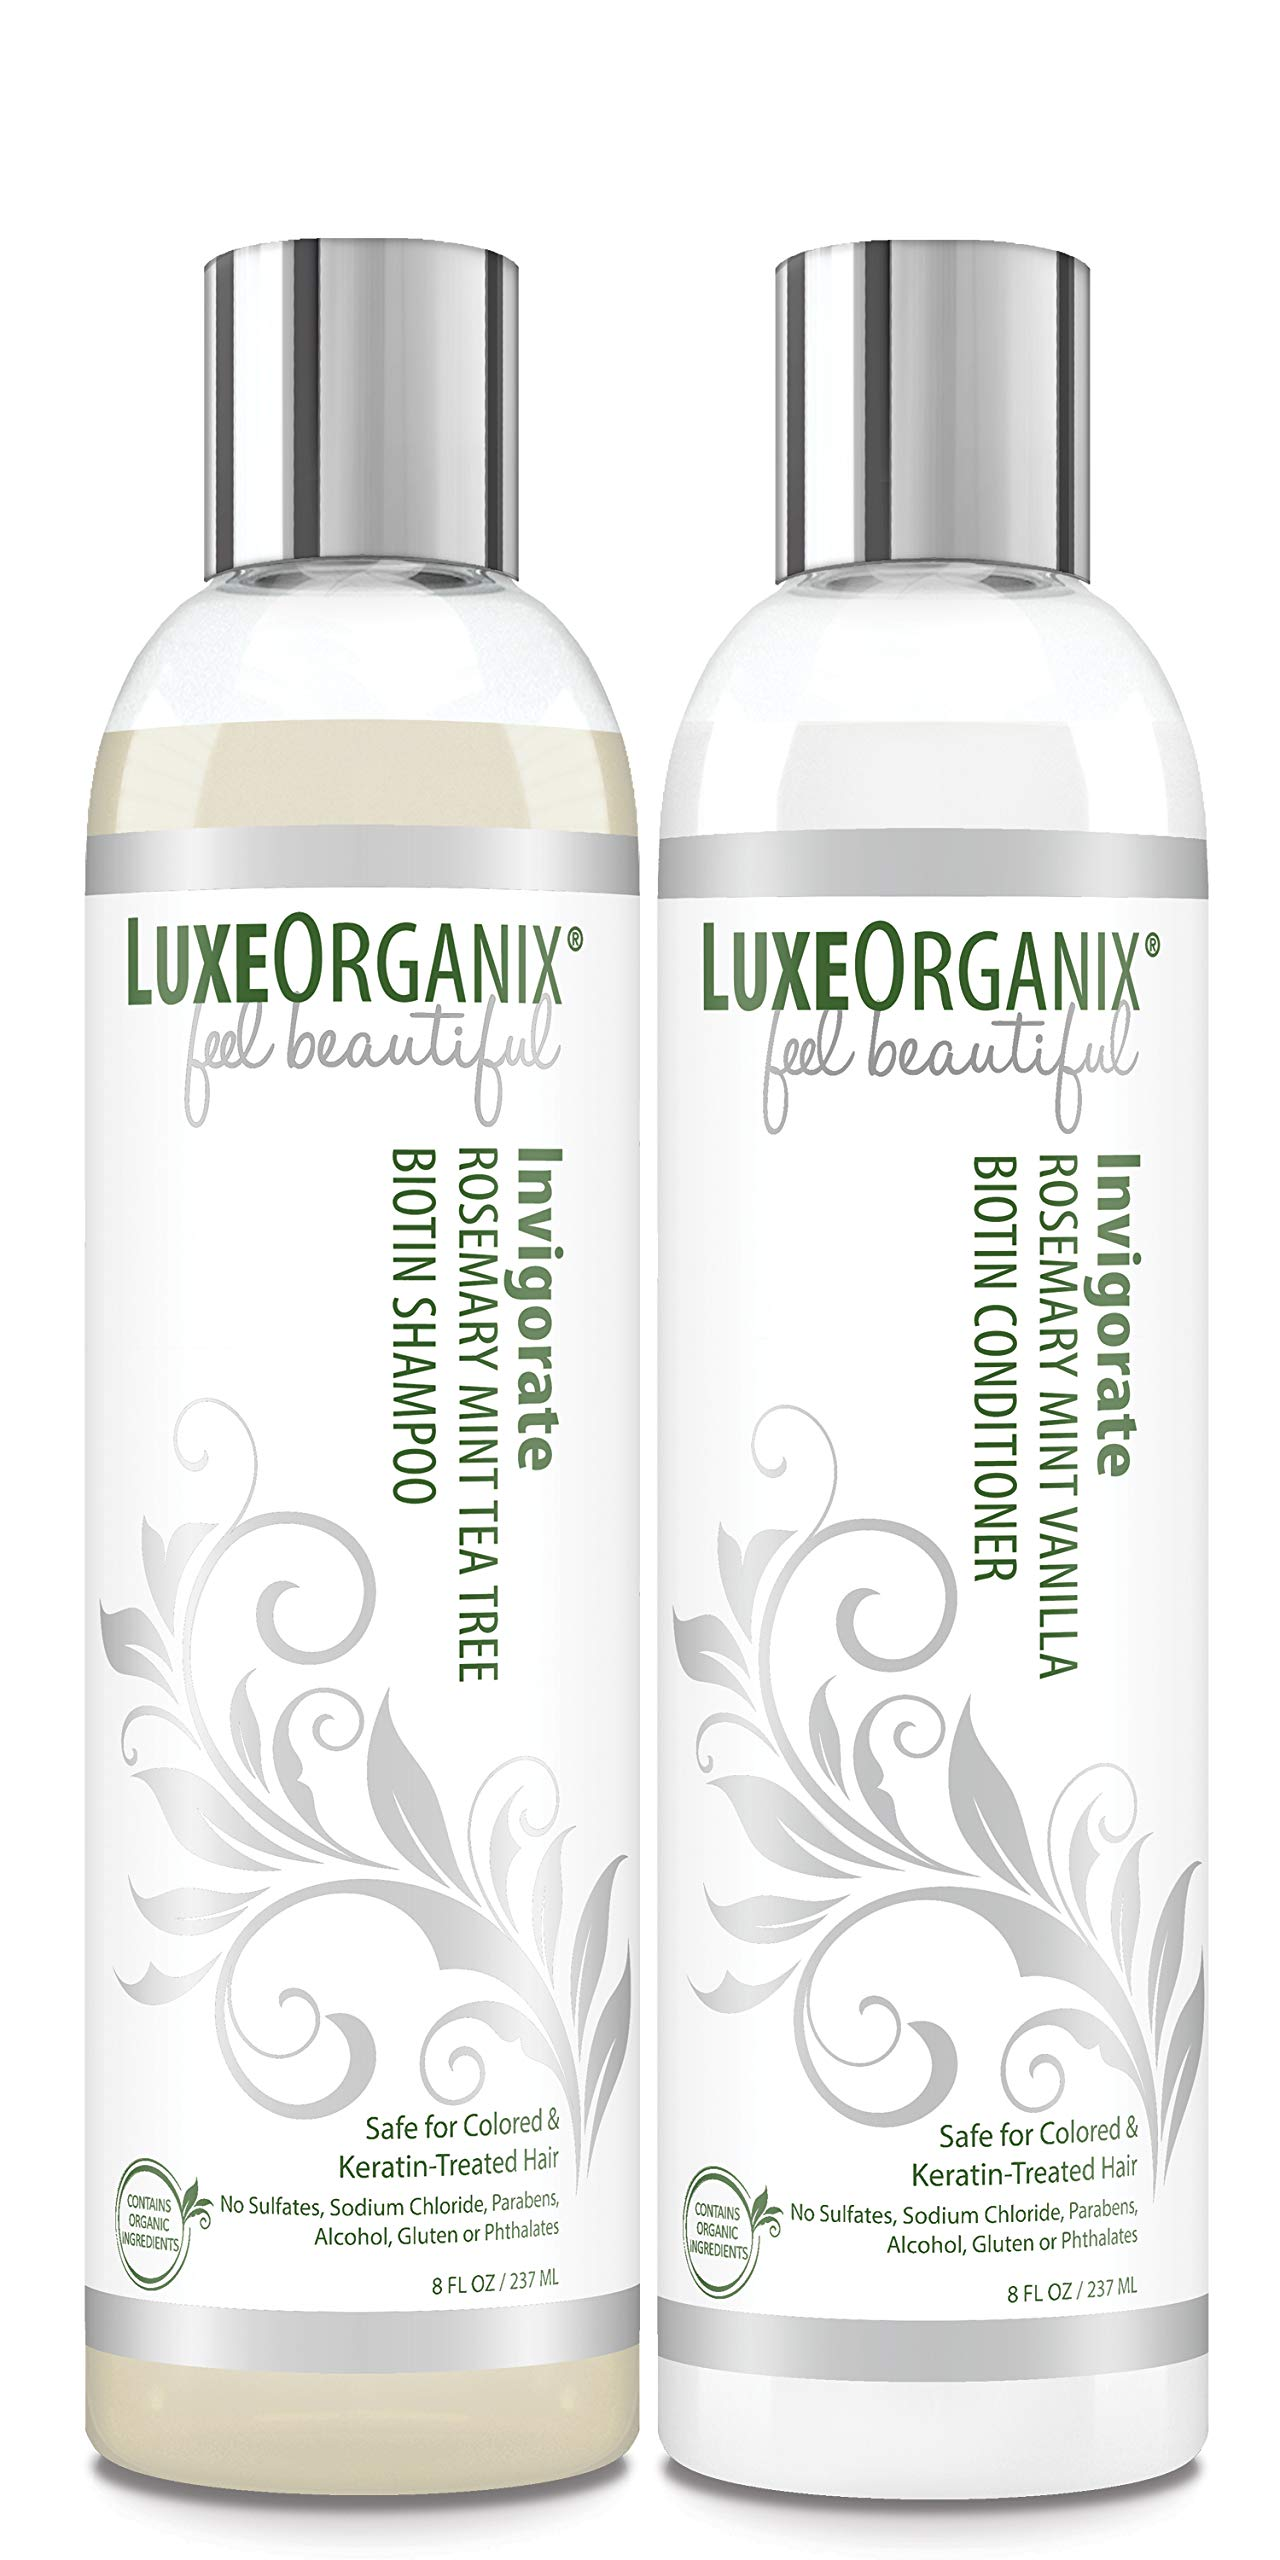 Biotin Organic Shampoo and Conditioner: Safe for Color Treated and Keratin Hair Treatments. Natural Mint, Tea Tree and Rosemary Oils for Healthier Growing Hair and Scalp. For All Hair Types. (USA) by LuxeOrganix